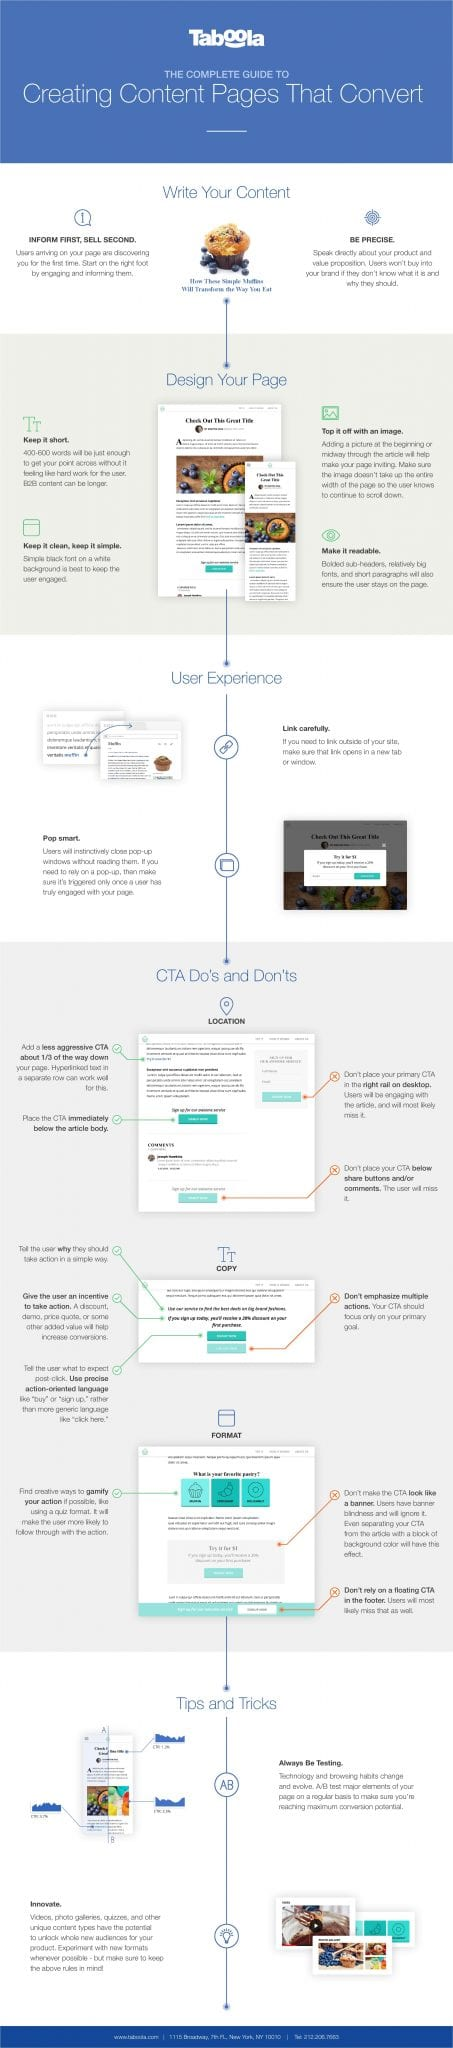 taboola landing page best practices